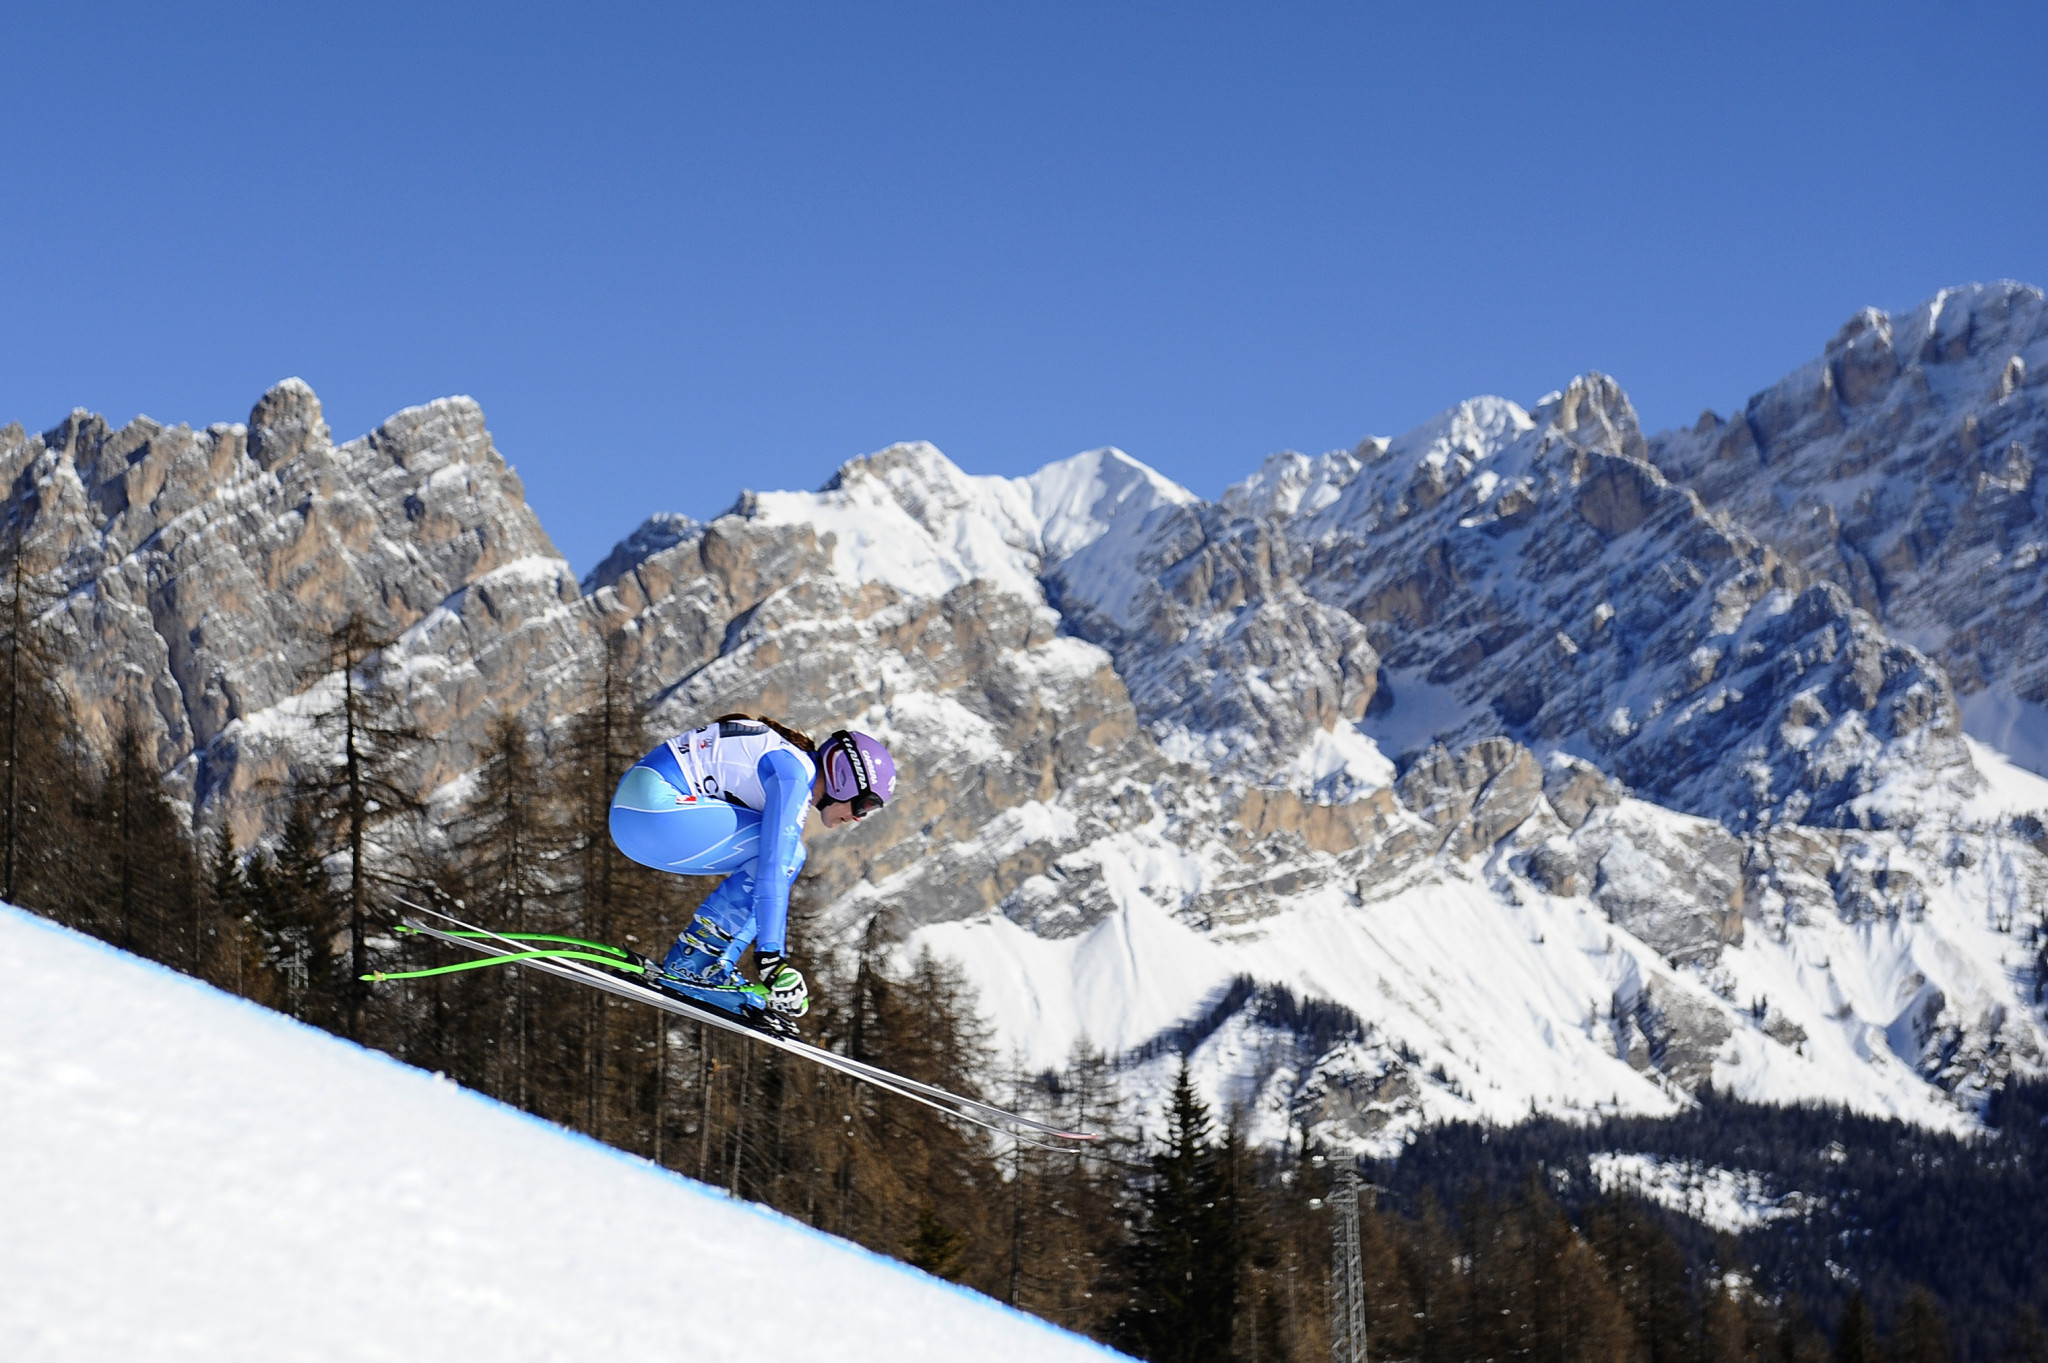 Organisers are still predicted a budget surplus - aided by existing venues such as in Cortina d'Ampezzo ©Getty Images